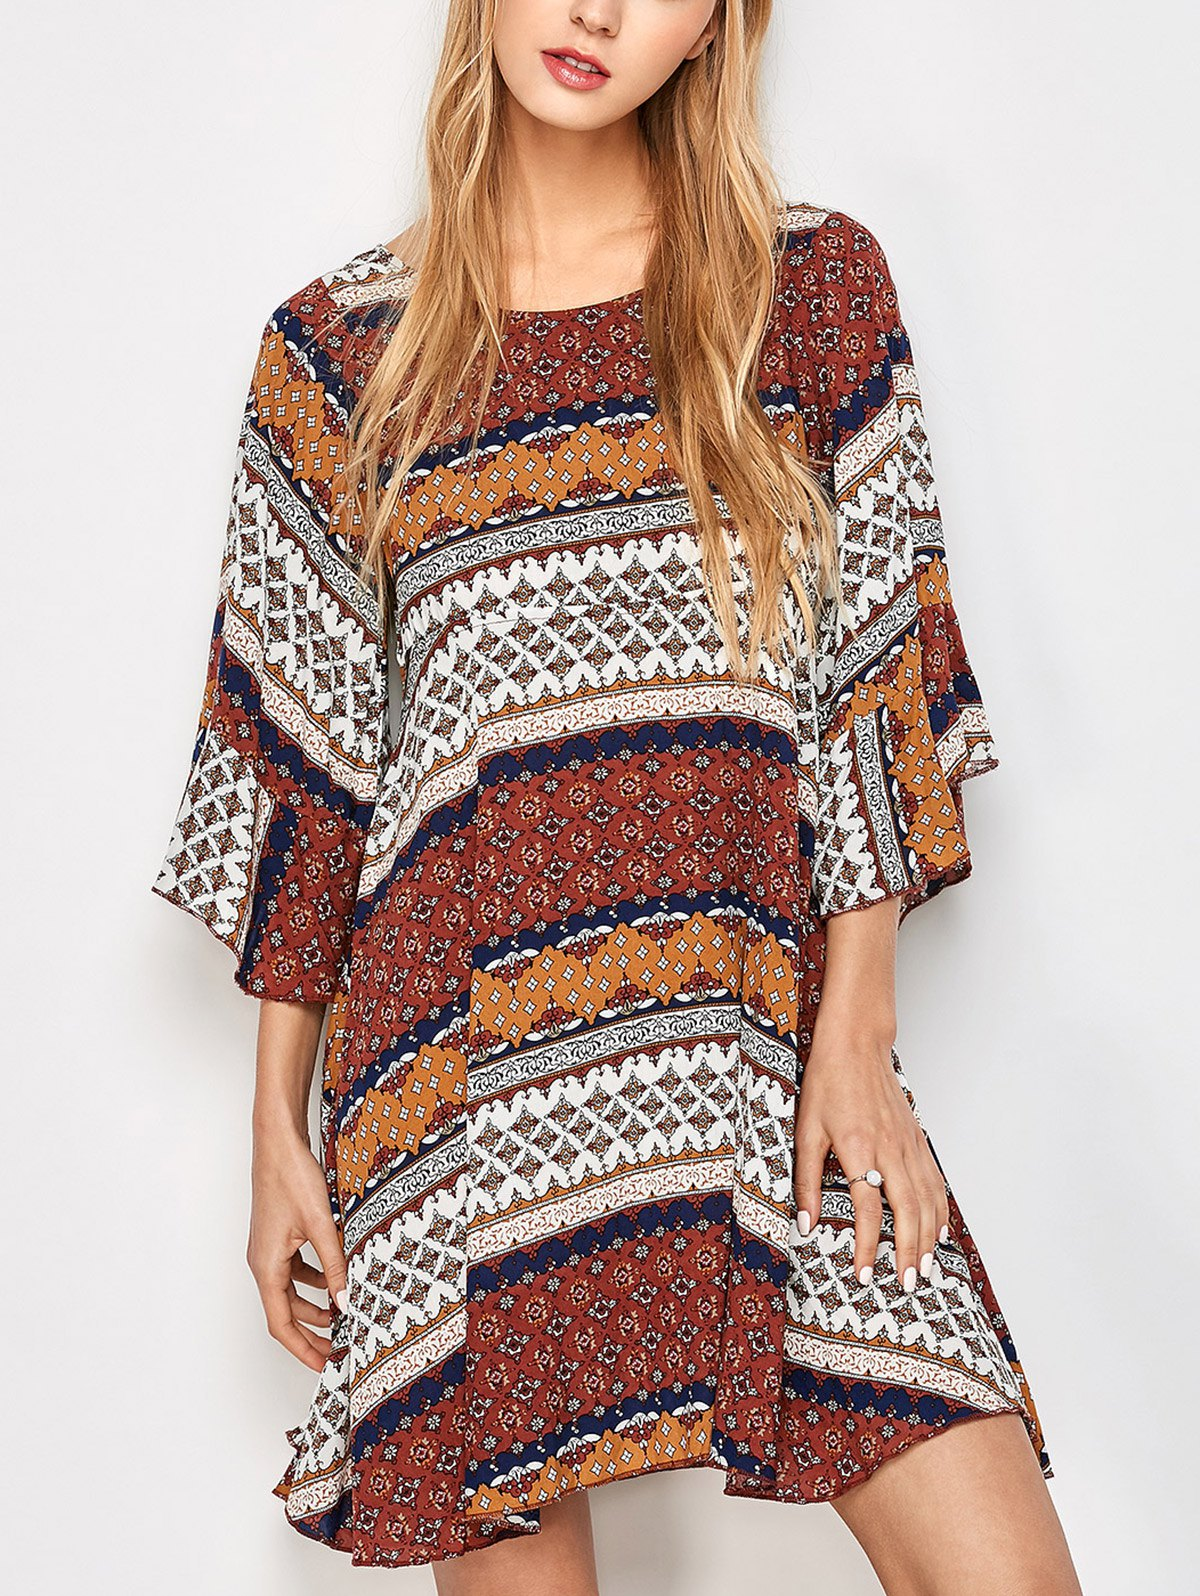 Tunic Tribal Print Criss Cross Kimono Dress